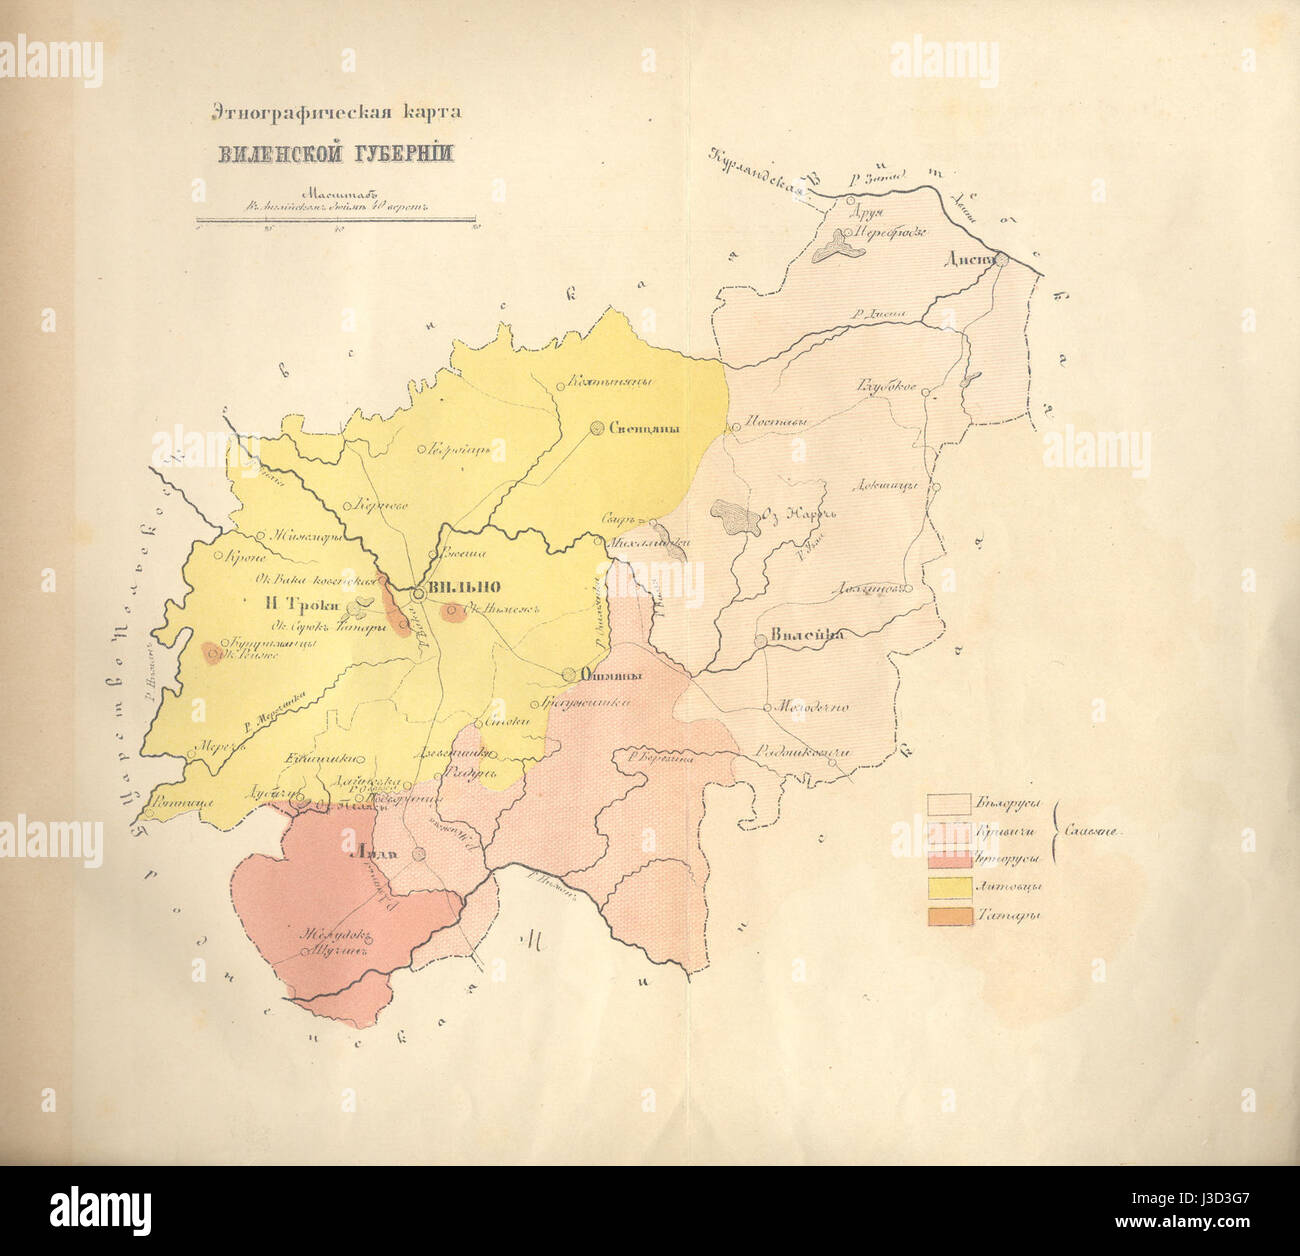 Ethnographic map of Vilno governorate of Russian empire   made by an officer A. Koreva   1861 AD - Stock Image